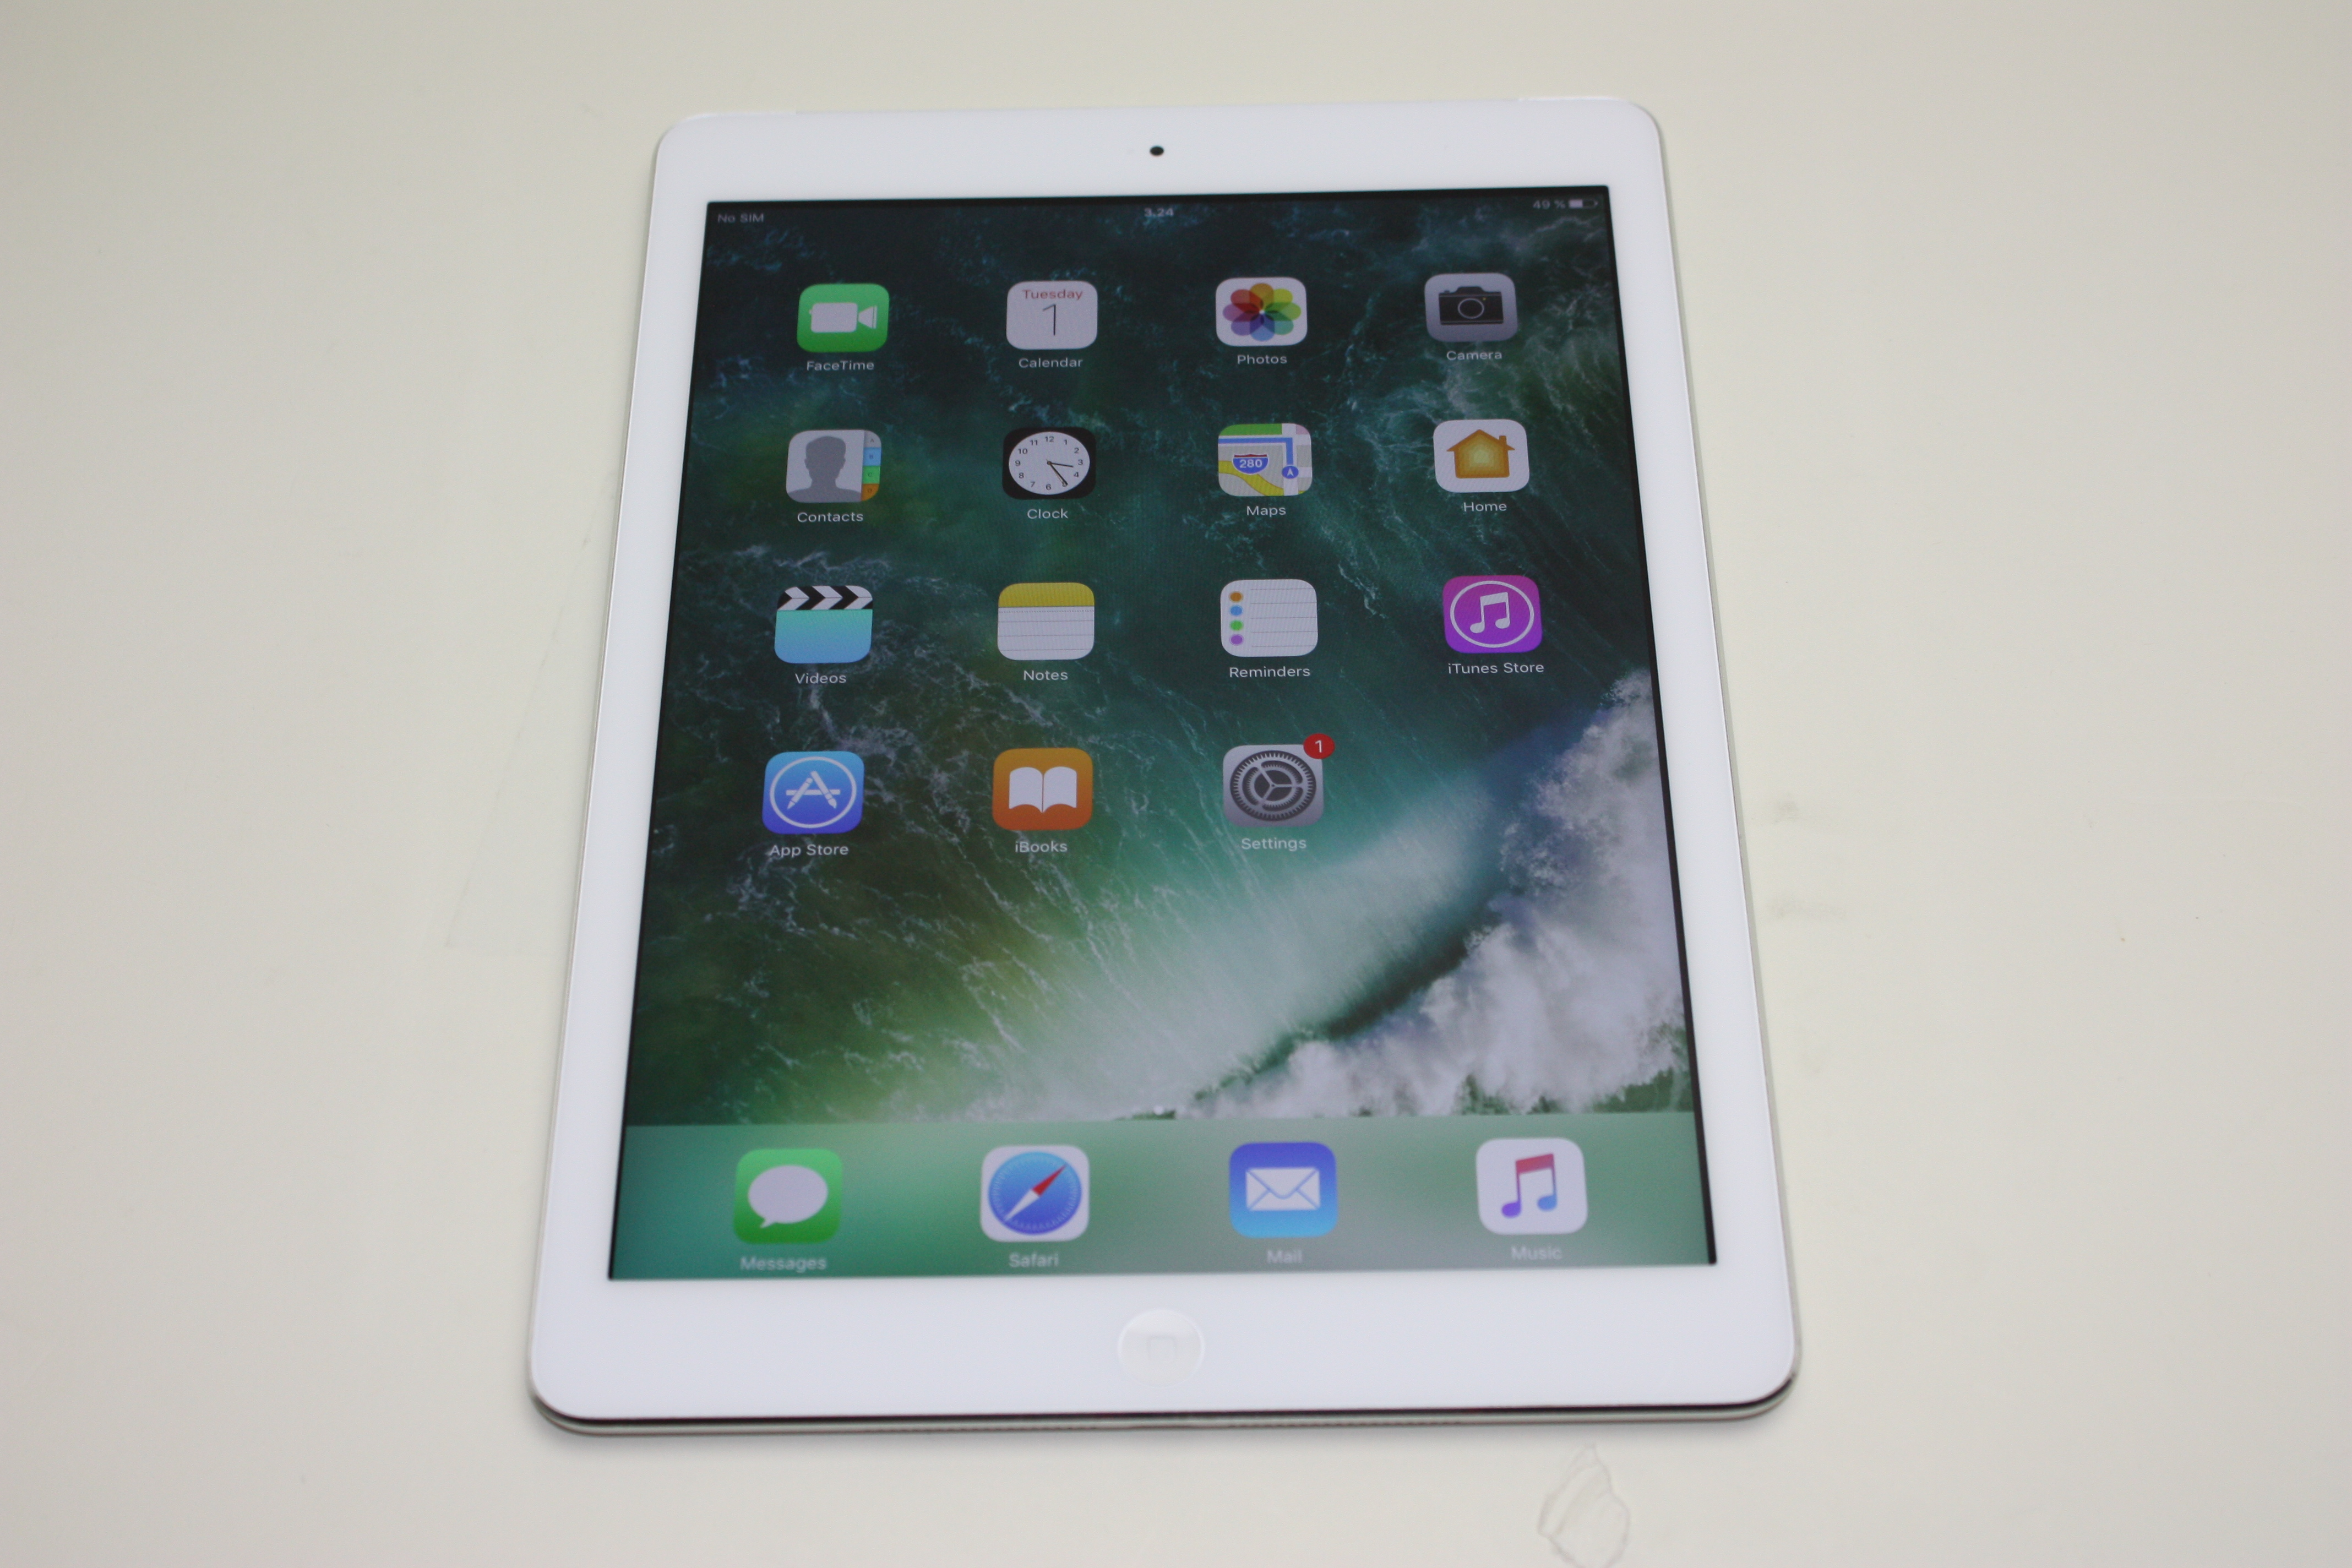 iPad Air (Wi-Fi + 4G), 32GB Storage, Silver, Product age: 37 months, image 1